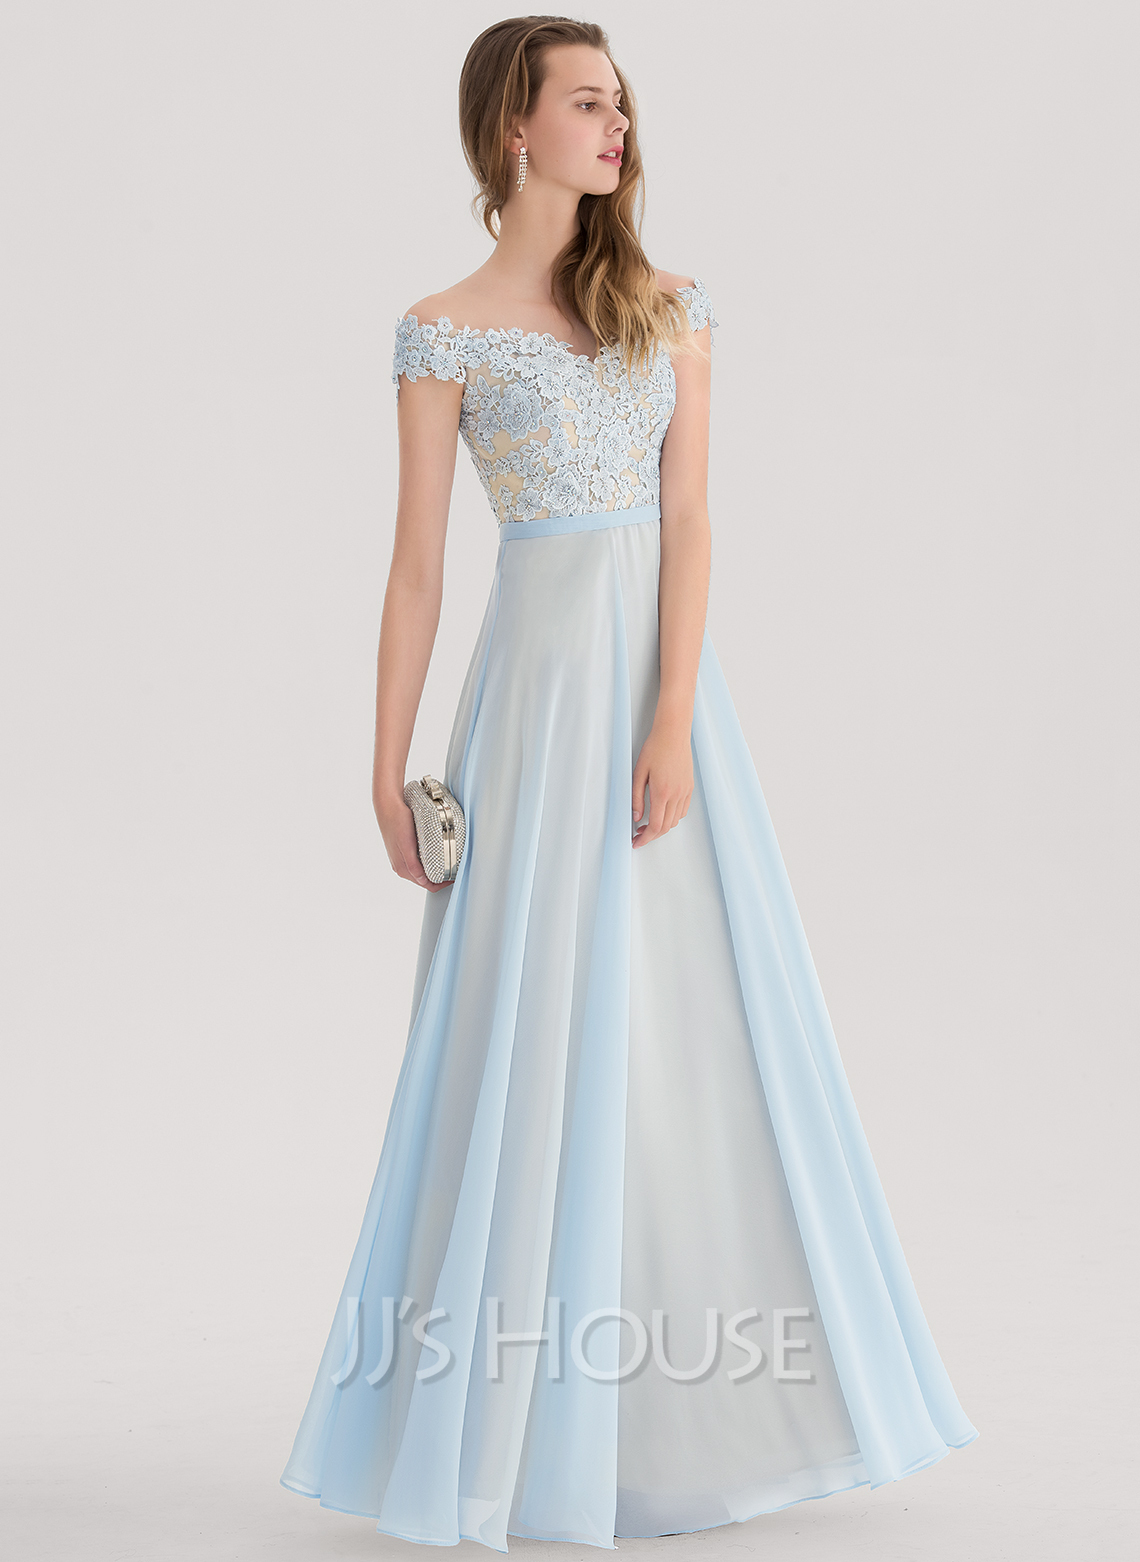 fe4a0f45808 A-Line Princess Off-the-Shoulder Floor-Length Chiffon Prom Dresses. Loading  zoom